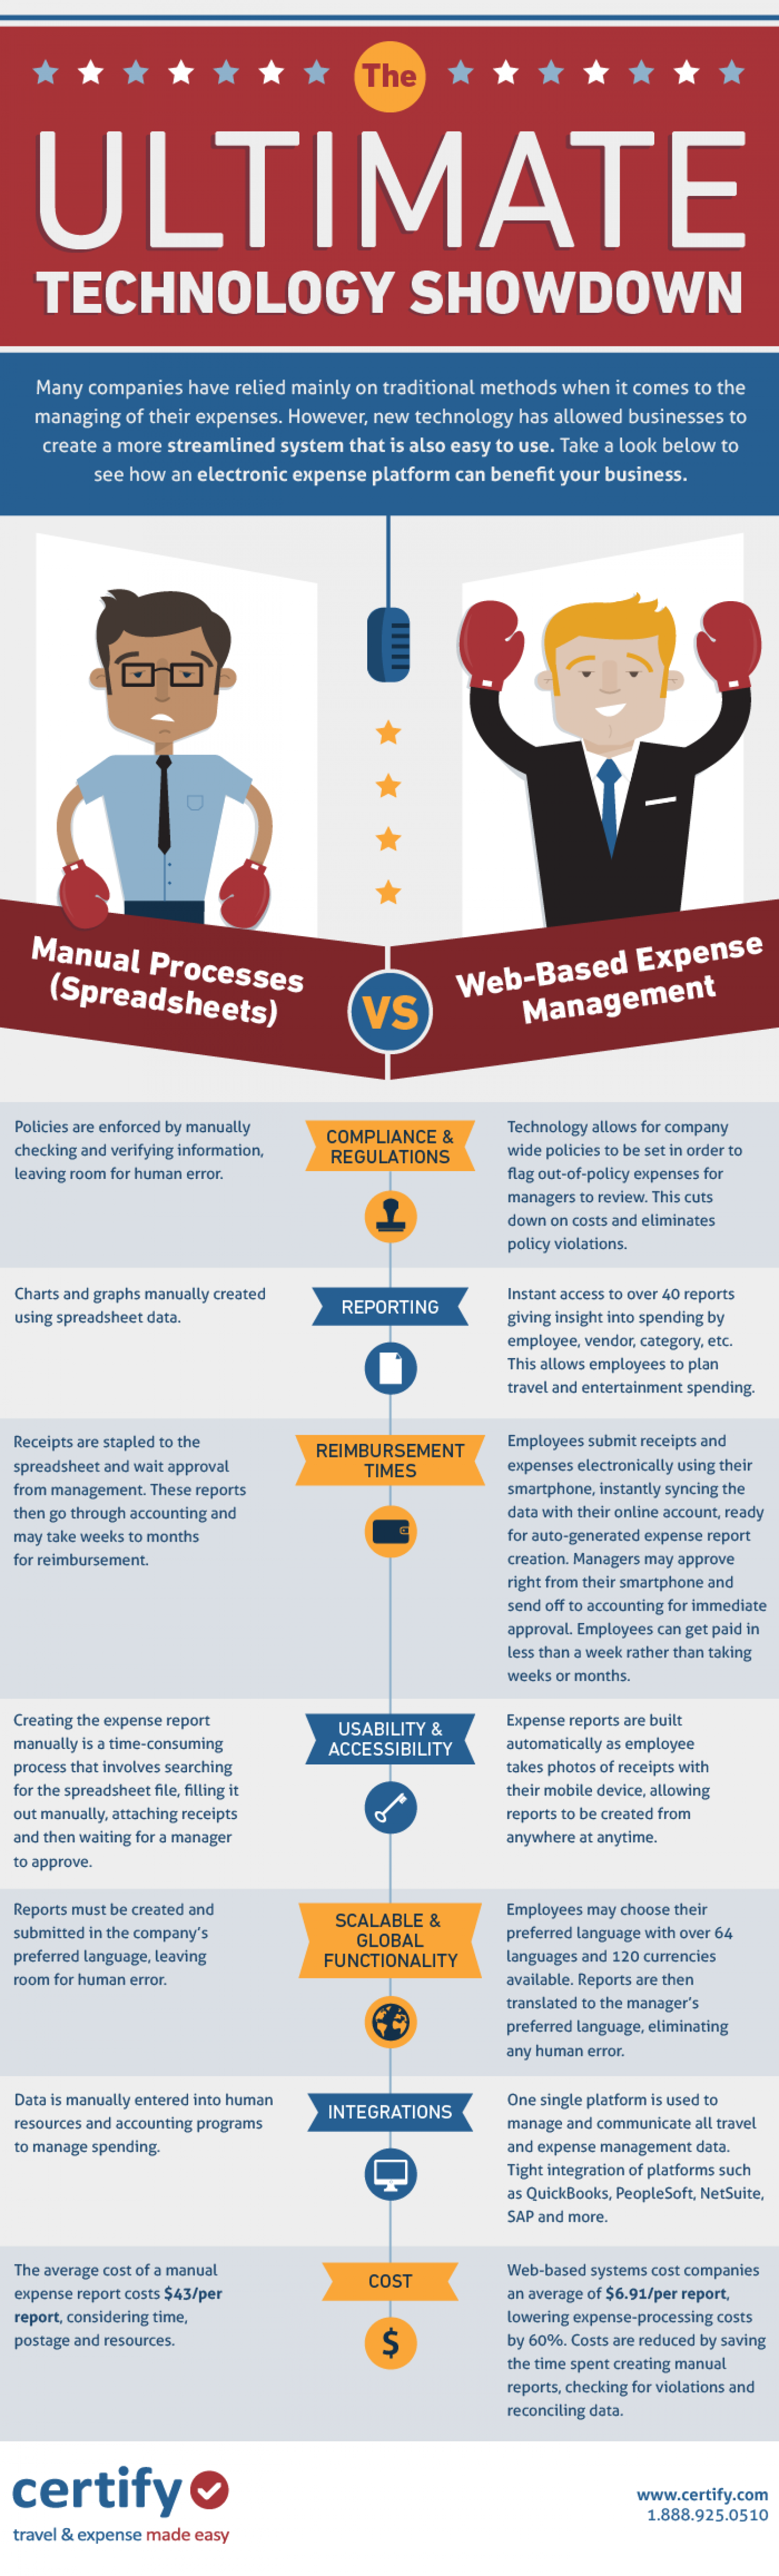 The Ultimate Technology Showdown: Manual Process Vs. Web-Based Expense Management Infographic